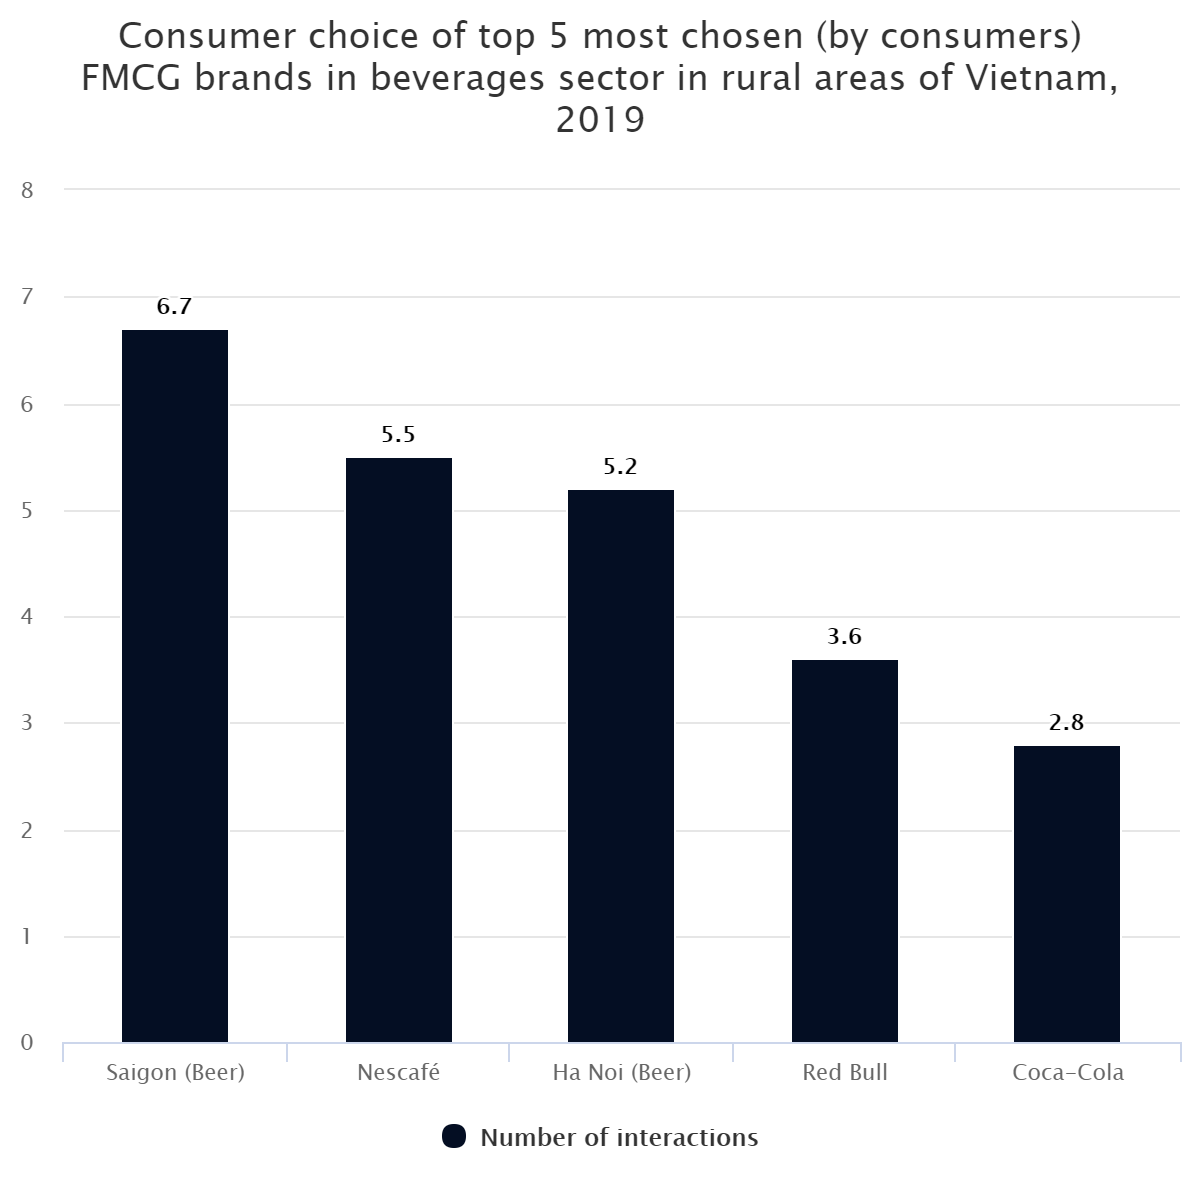 Consumer choice of top 5 most chosen (by consumers) FMCG brands in beverages sector in rural areas of Vietnam, 2019